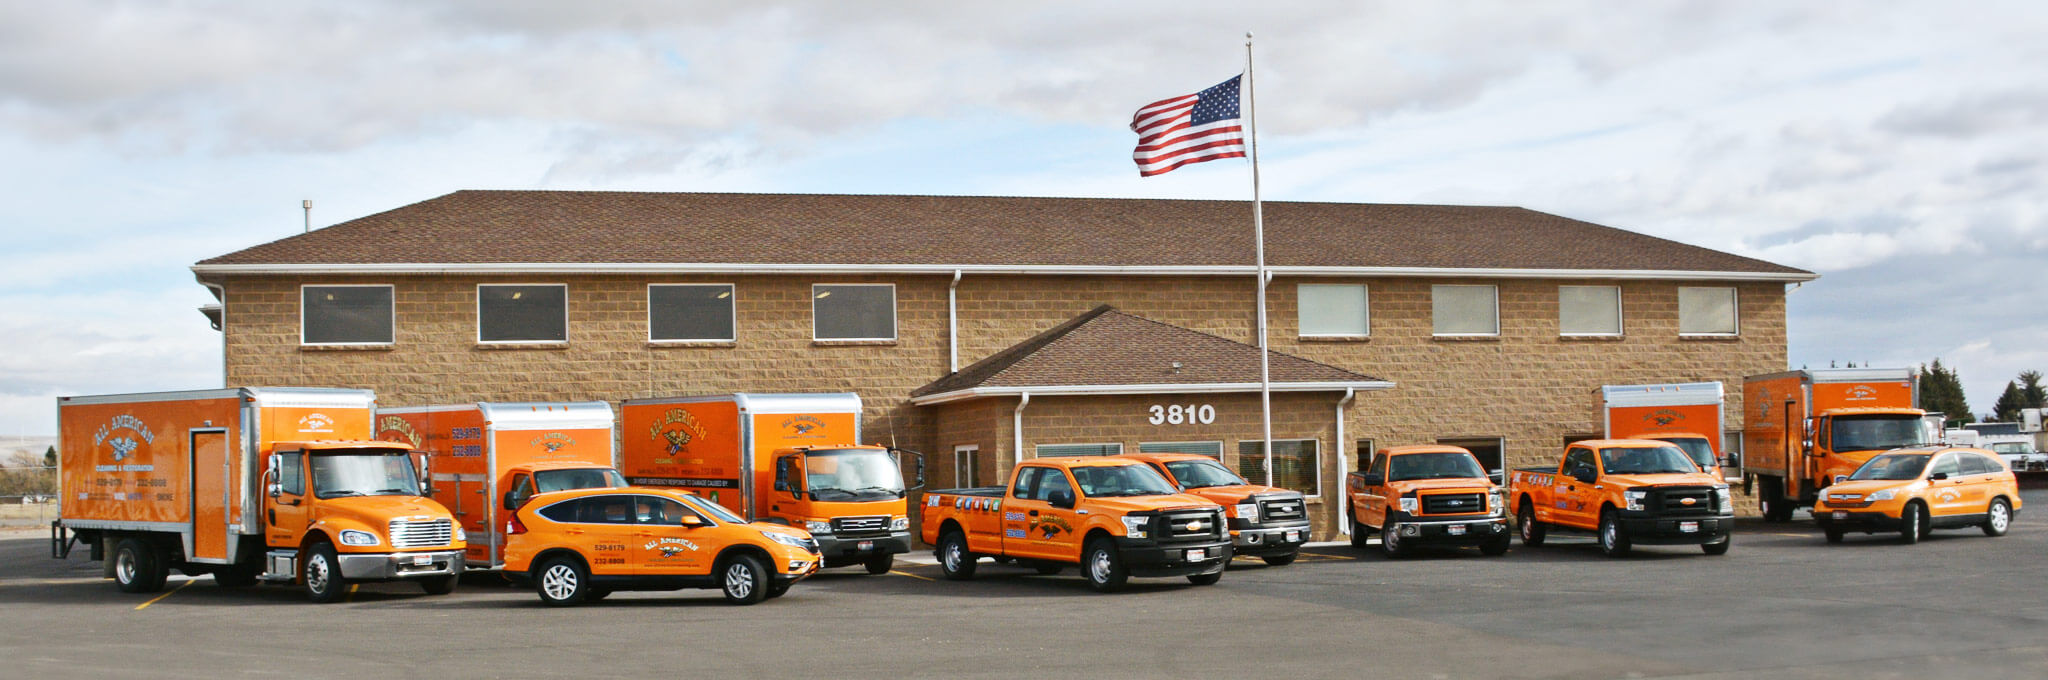 American Cleaning & Restoration Services in Southeast Idaho